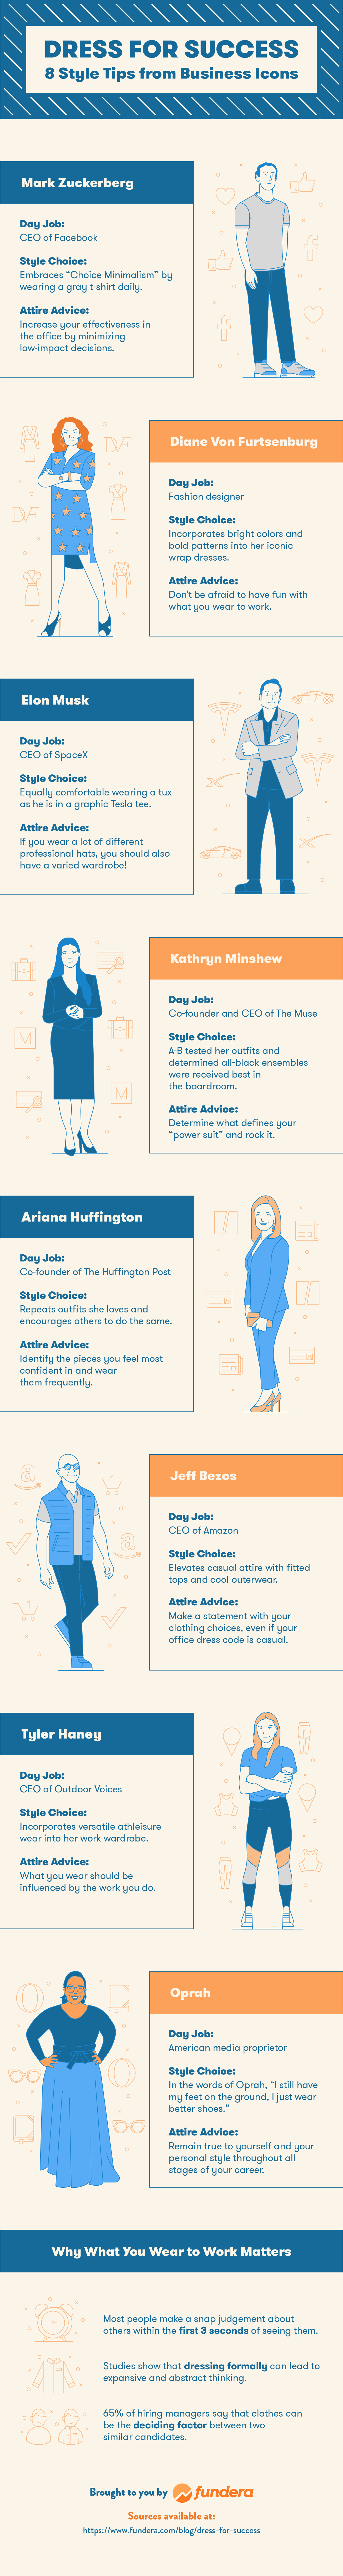 How to Make Your Professional Attire Speak: Tips from Famous Business Icons - Infographic